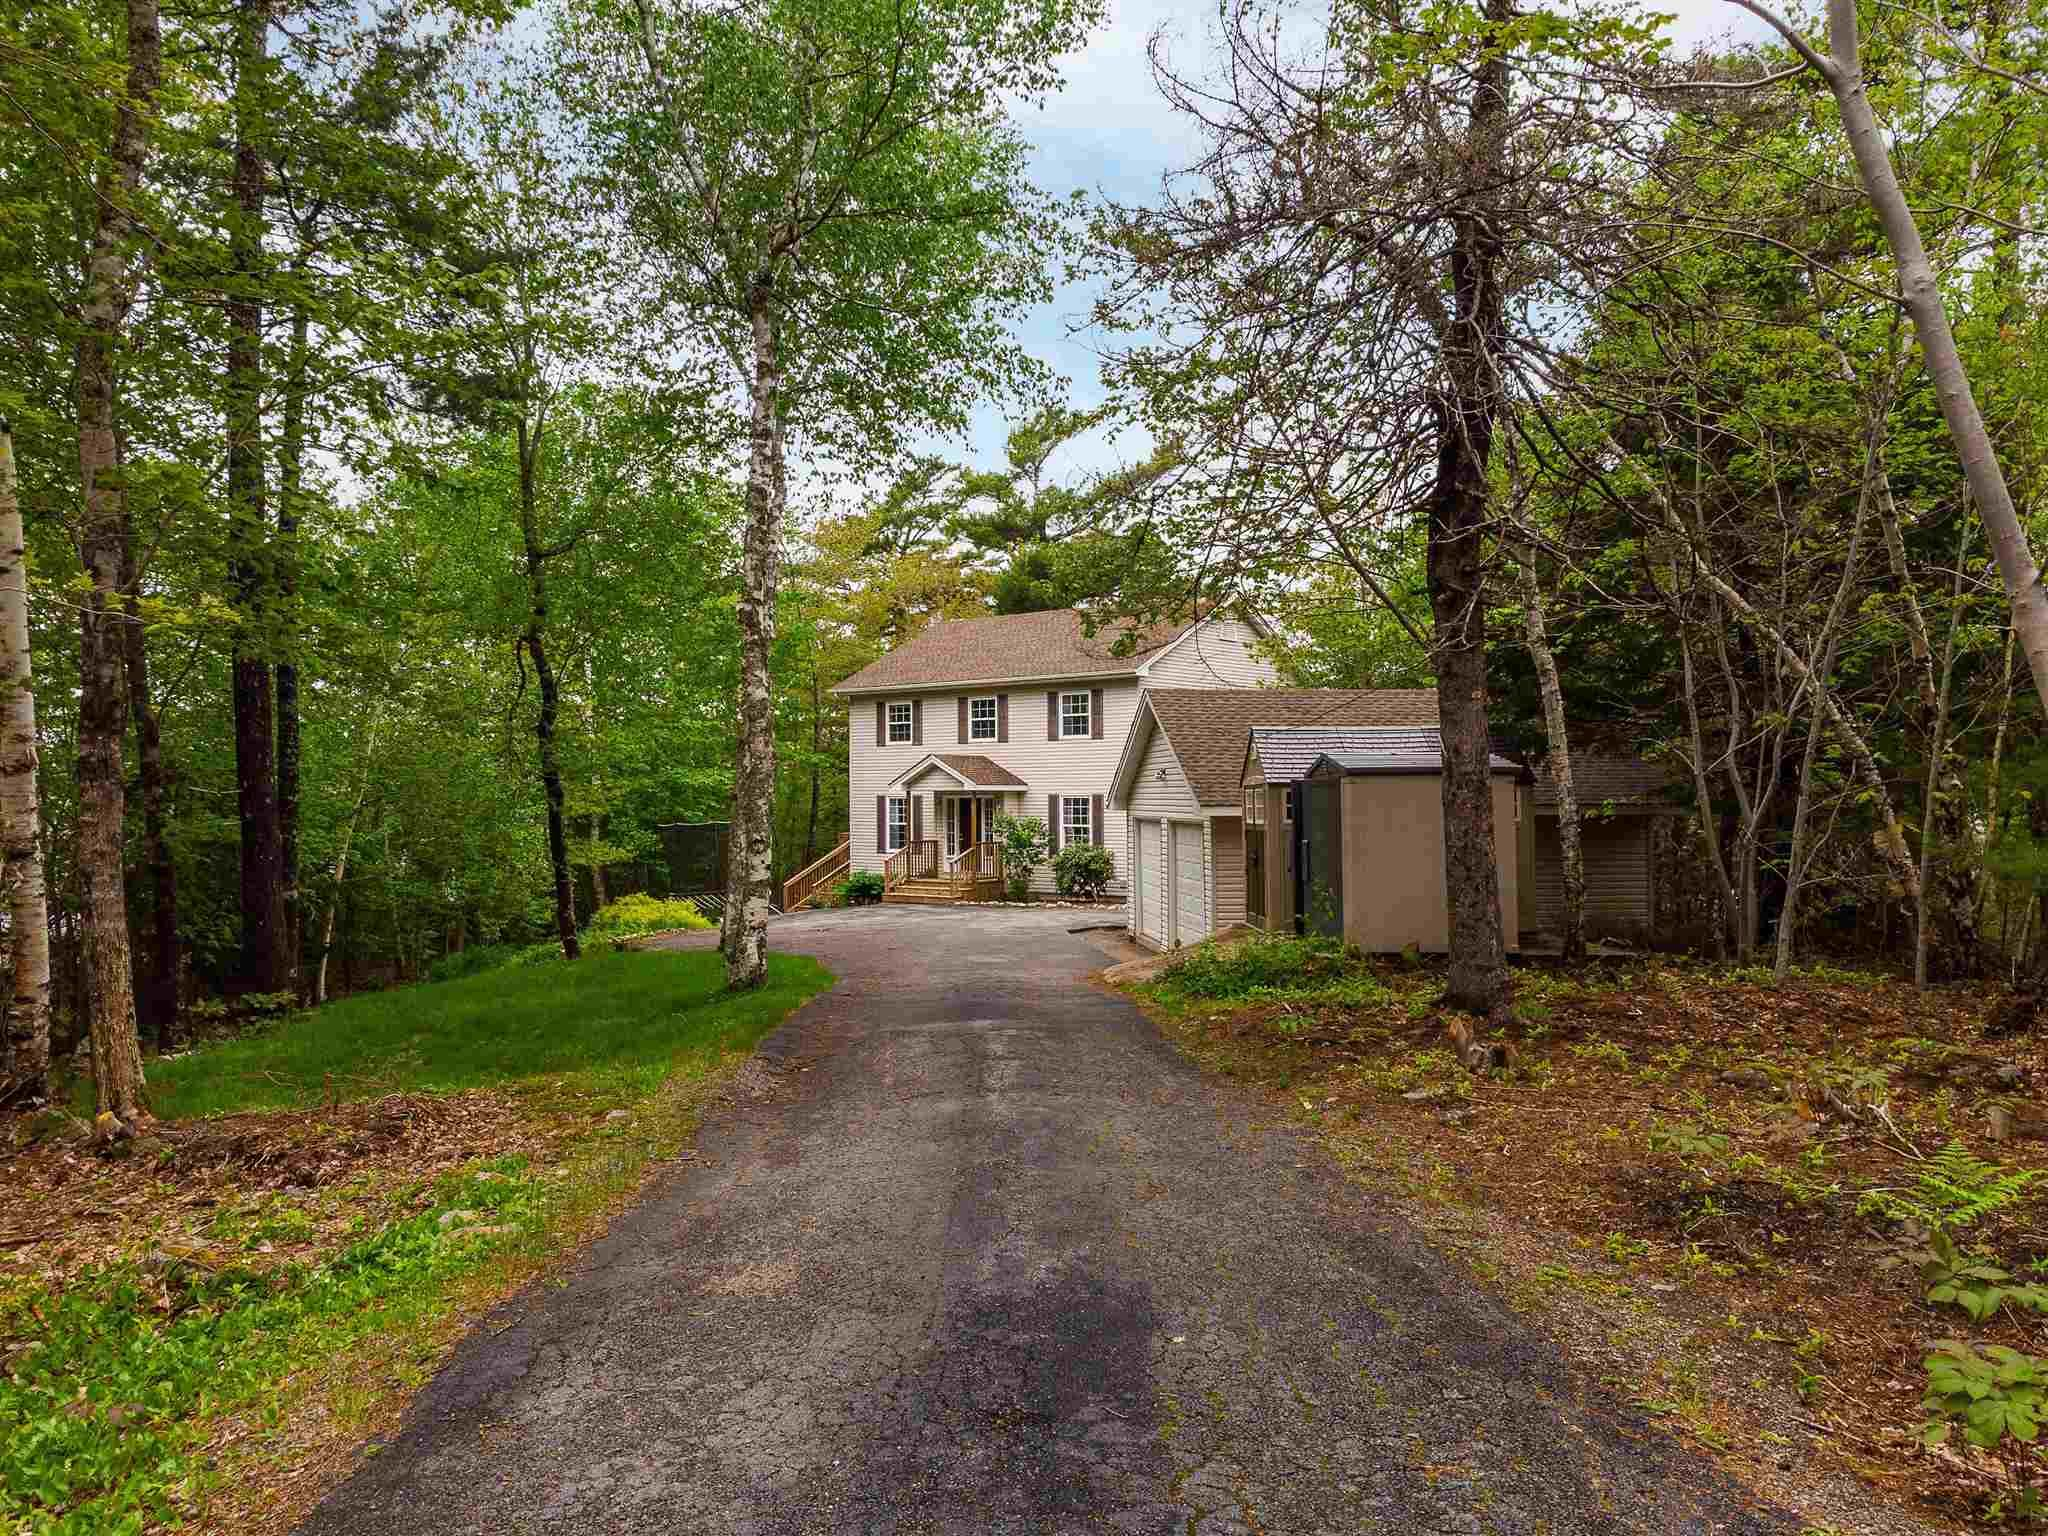 Main Photo: 22 Piccadilly Close in Stillwater Lake: 21-Kingswood, Haliburton Hills, Hammonds Pl. Residential for sale (Halifax-Dartmouth)  : MLS®# 202113944